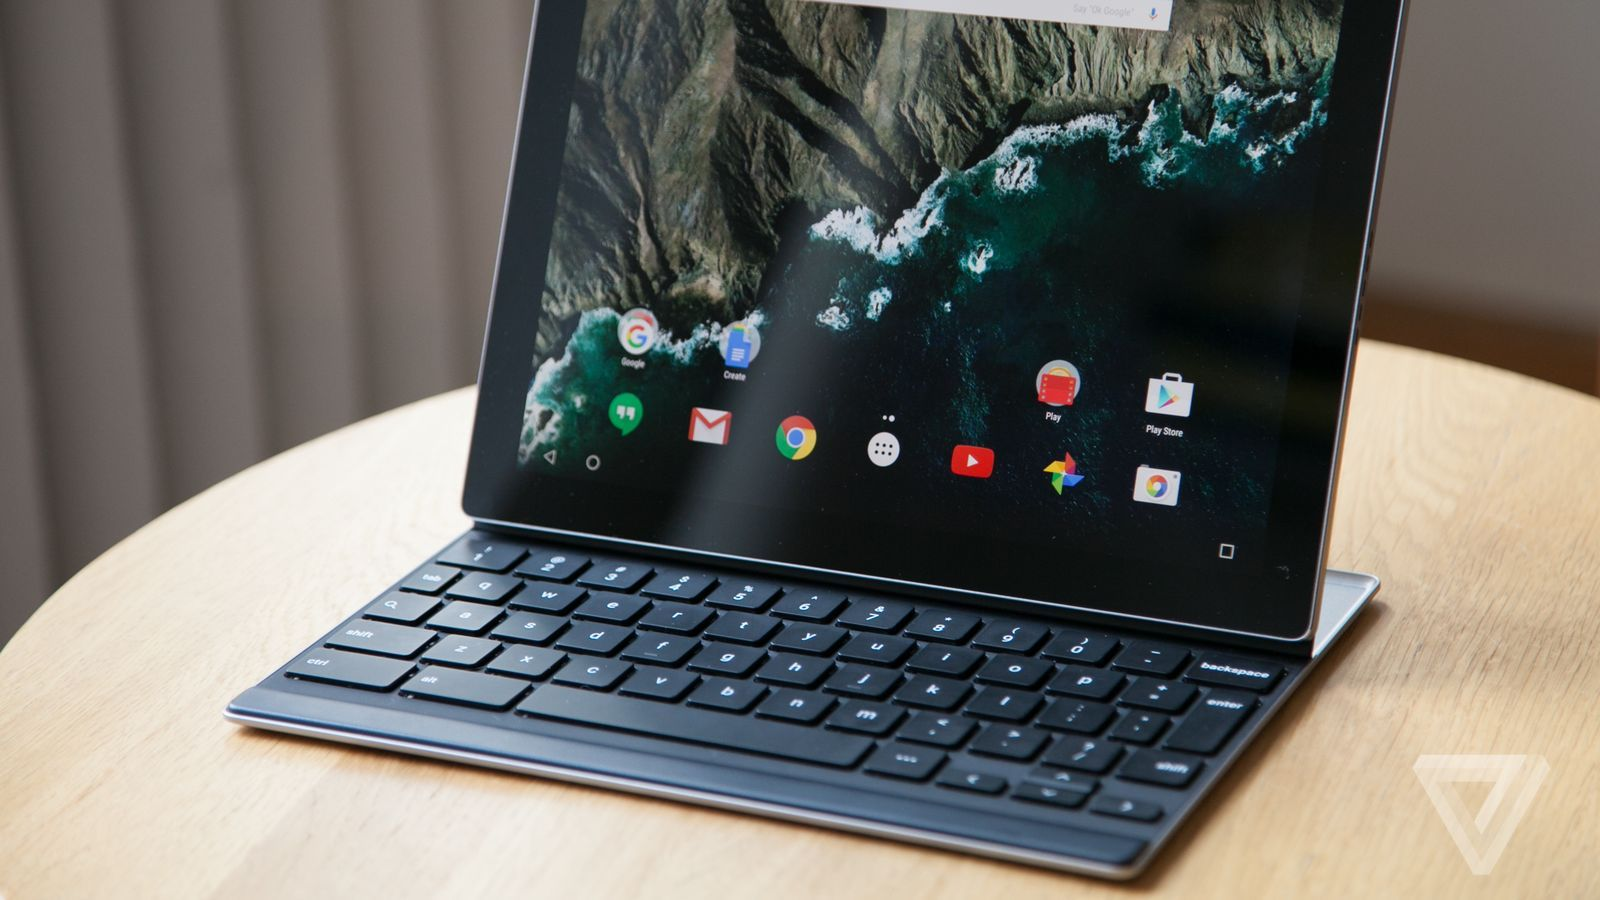 Google pixel c review too clever by half